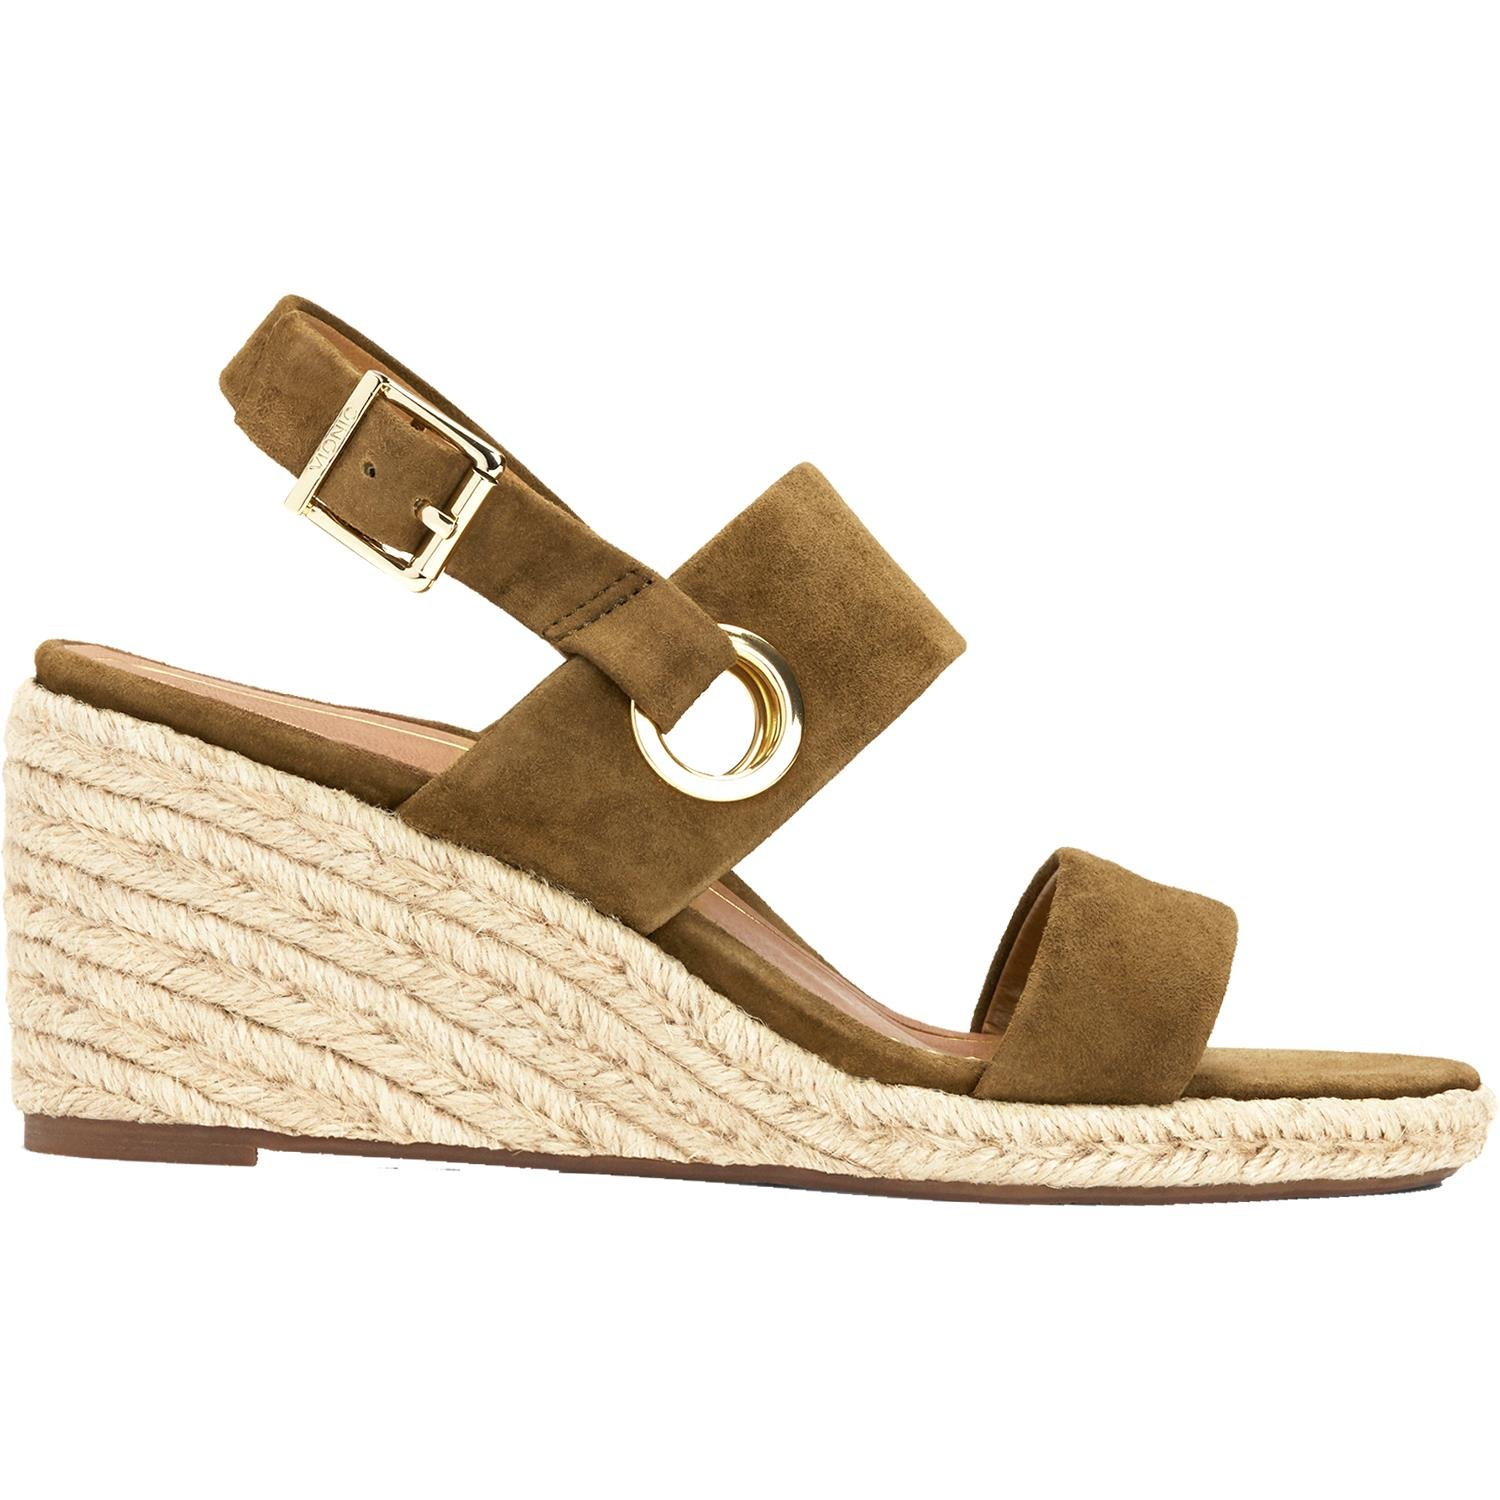 Vionic Tulum Vero - Womens Wedge Sandal Olive - 9.5 Medium